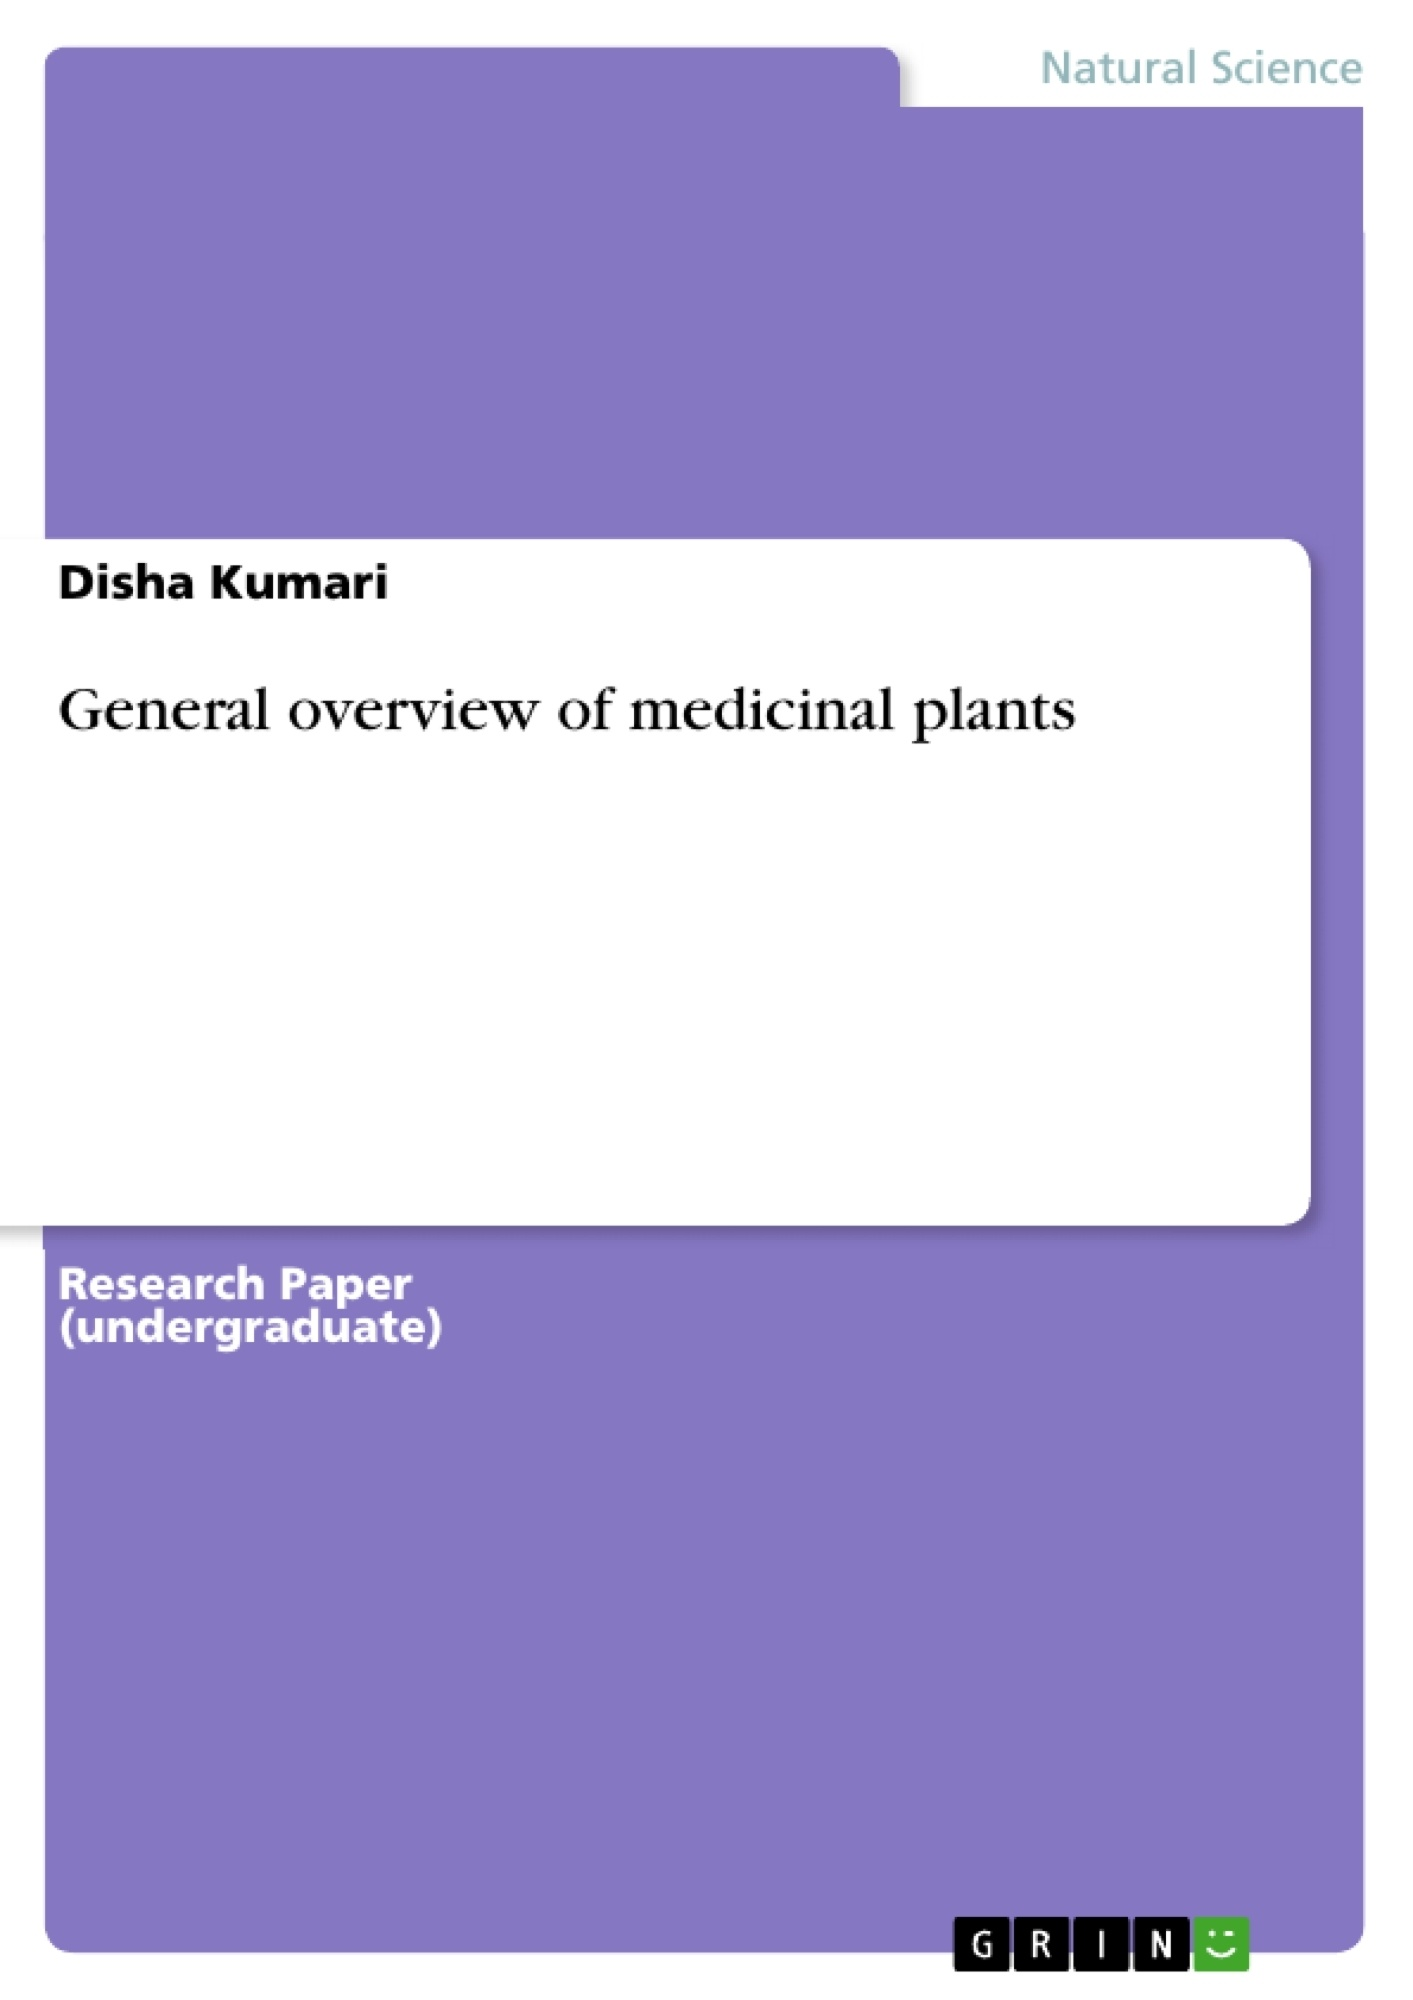 Title: General overview of medicinal plants